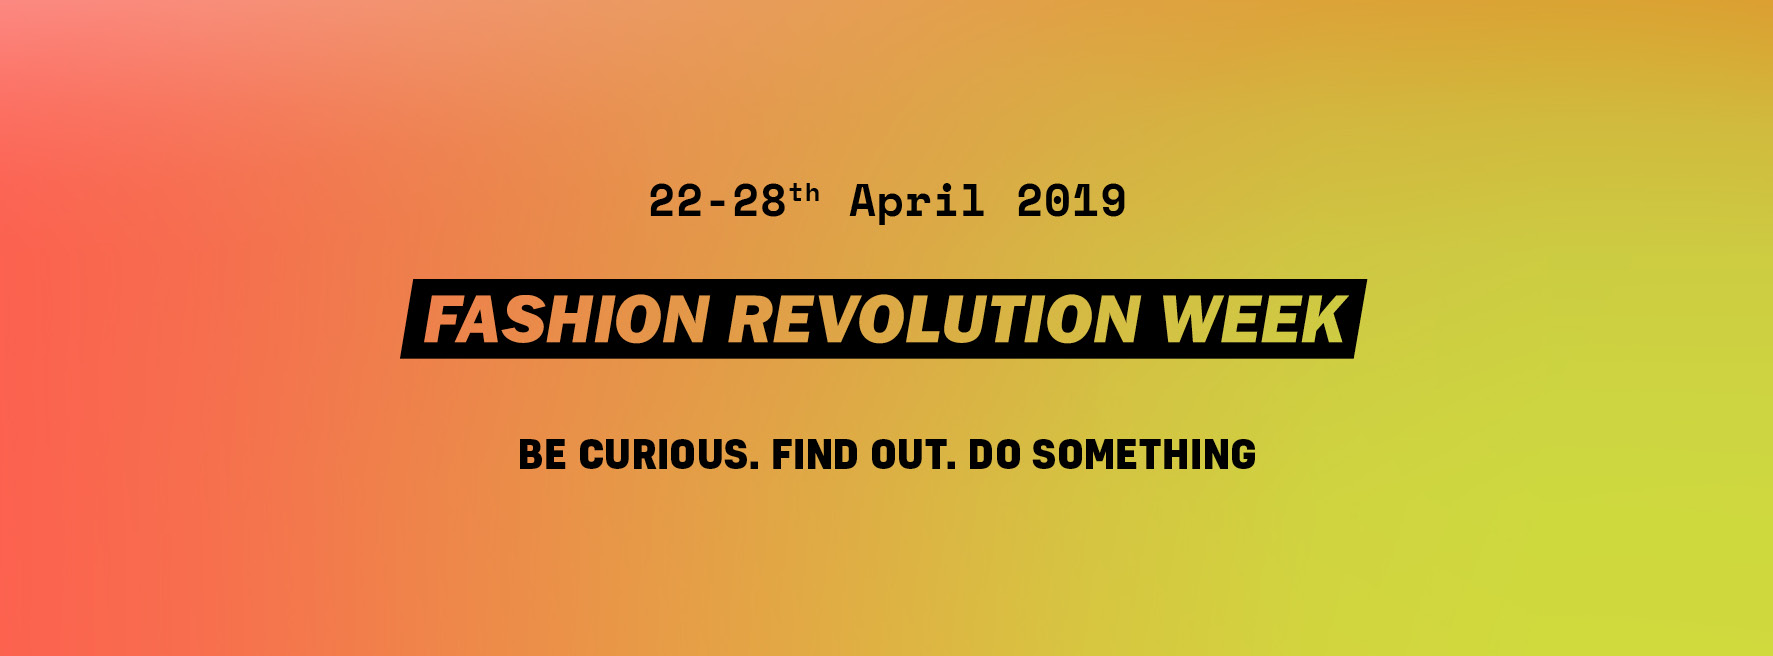 Fashion Revolution Week Košice